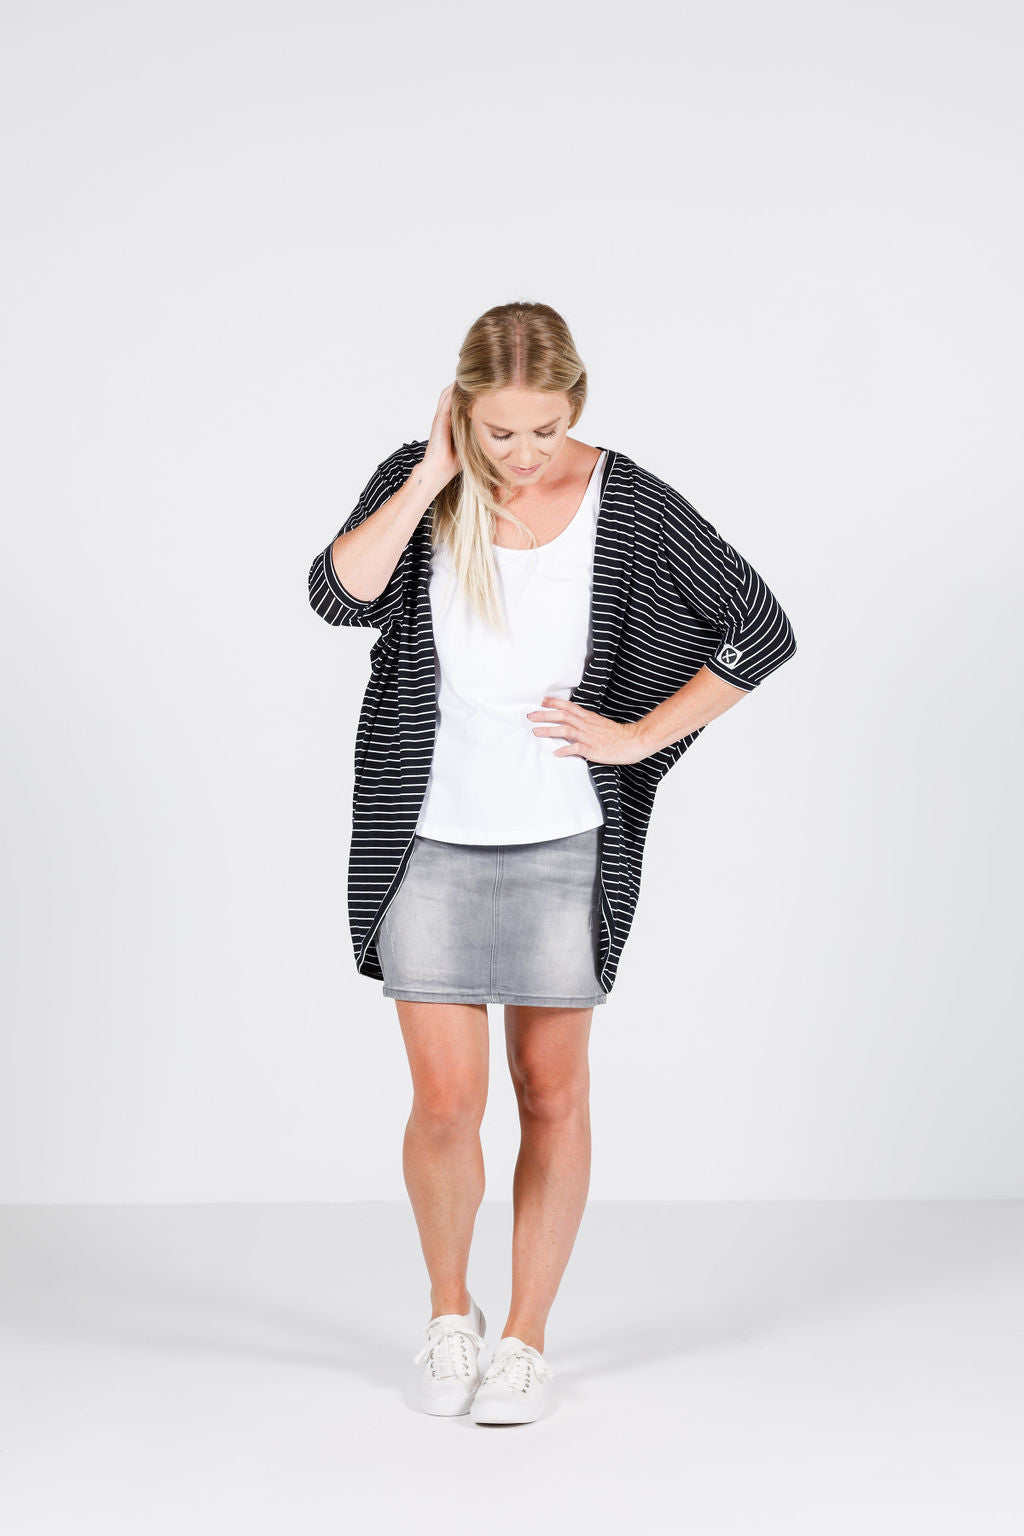 SUMMER KIMONO - Black with thin white stripes